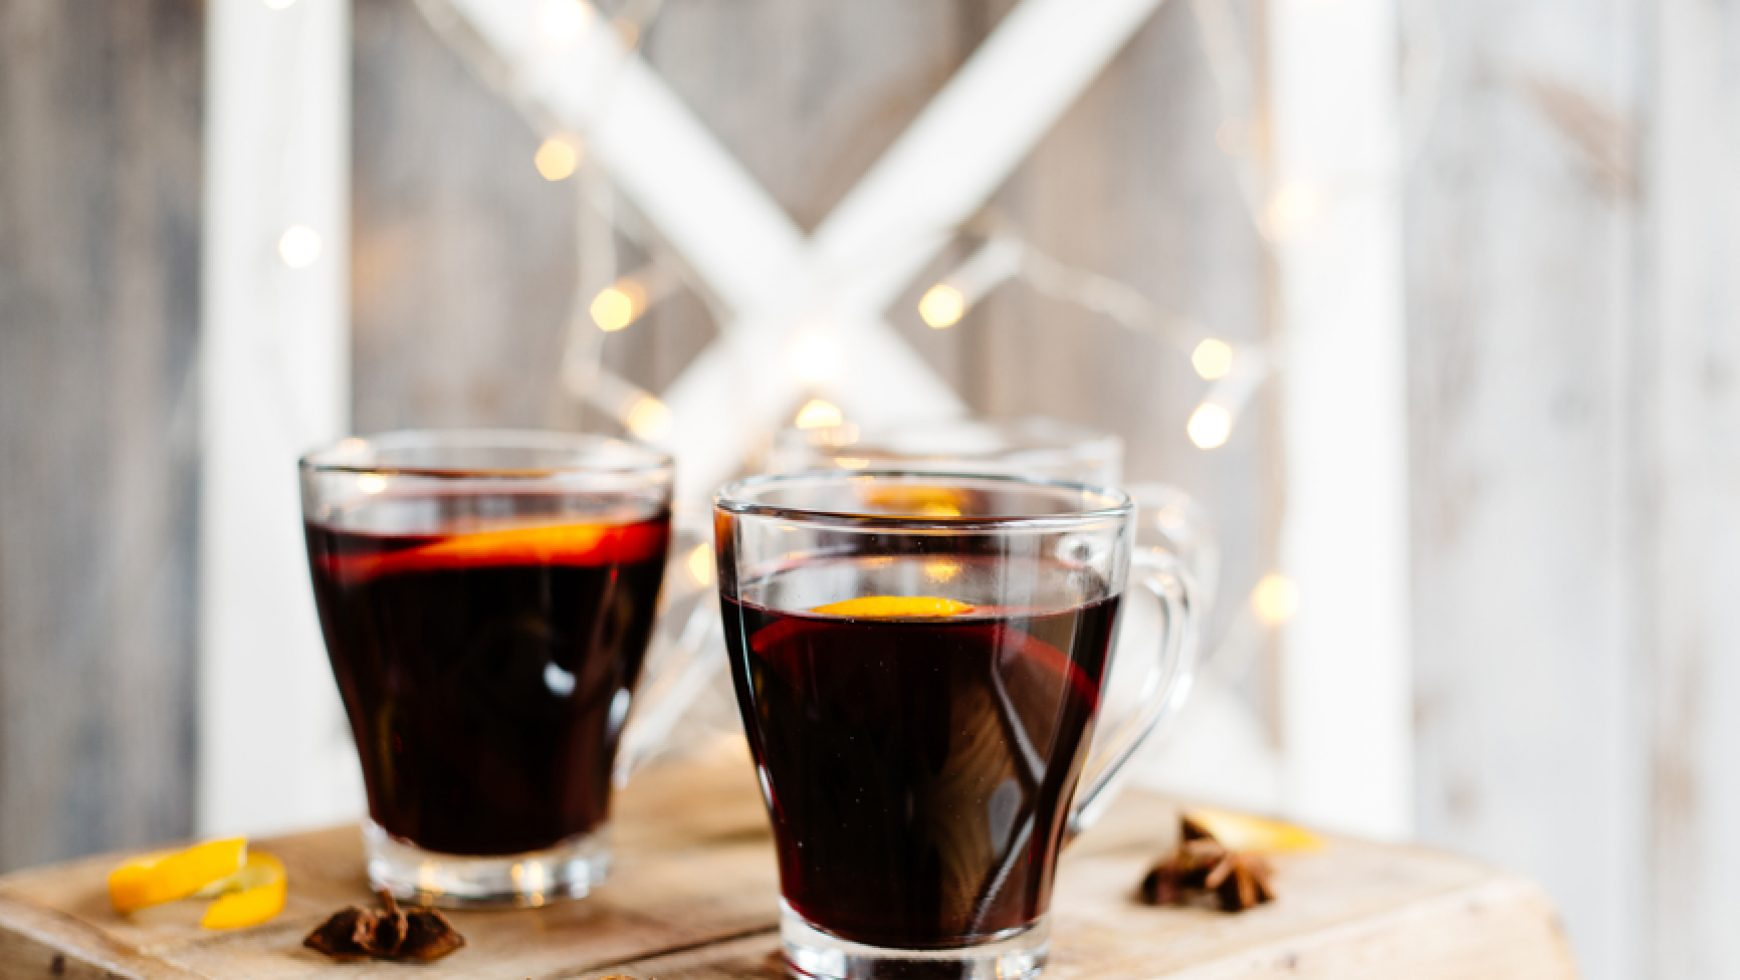 Cornman Farms Mulled Wine Recipe